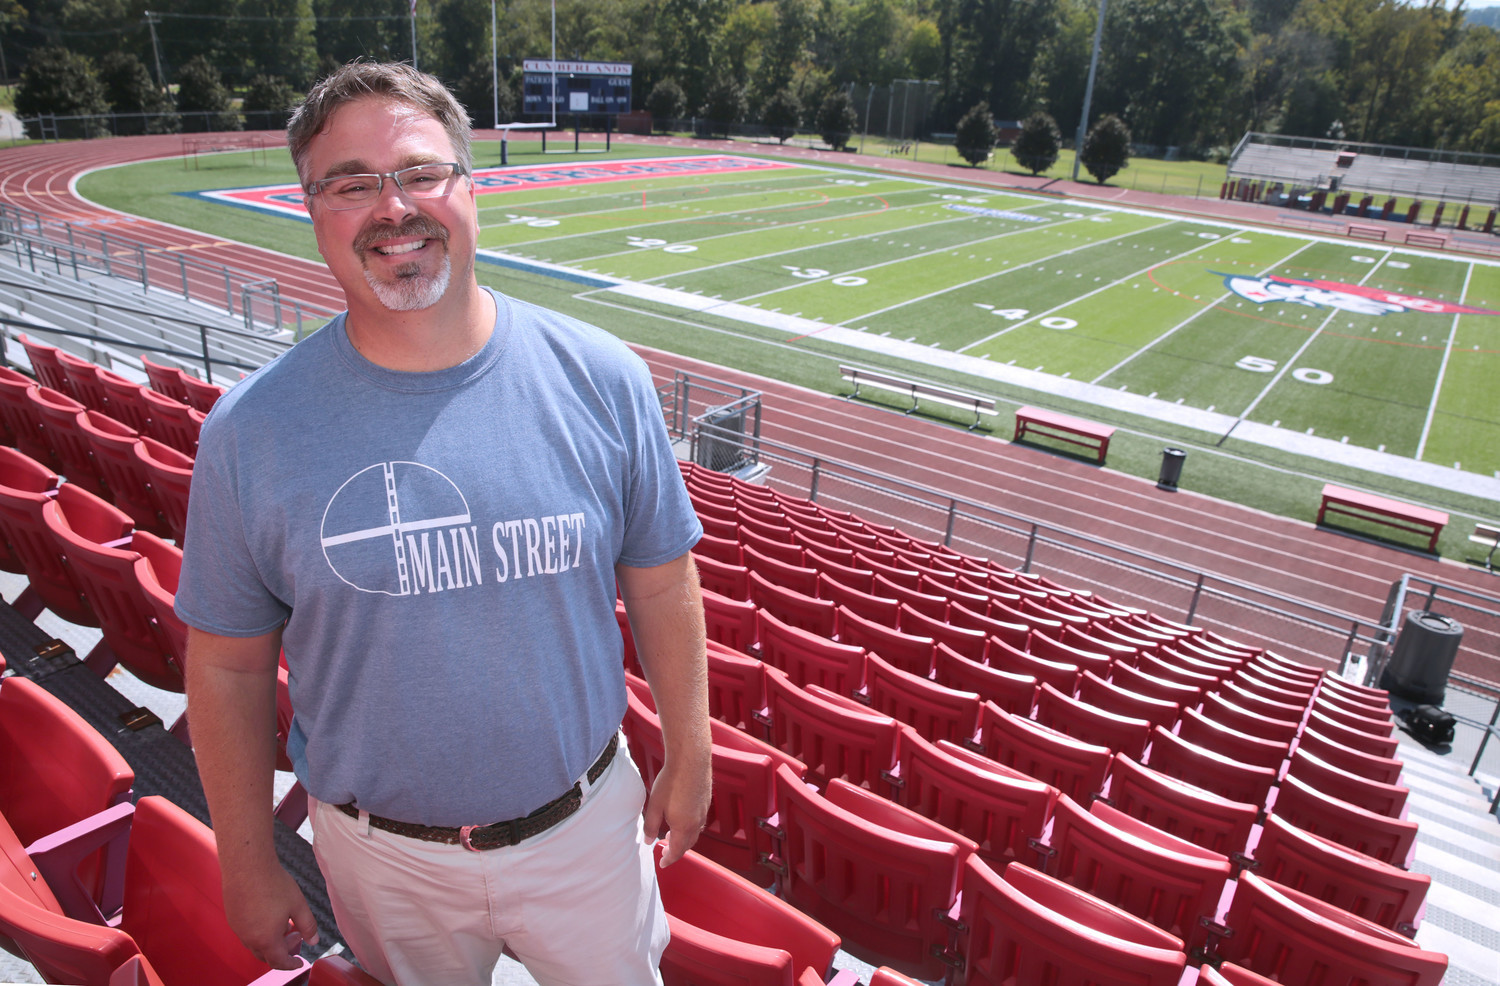 Pastor Donnie Patrick, of Main Street Baptist Church in Williamsburg, was instrumental in the professions of faith by more than 30 University of the Cumberlands athletes. As chaplain of the university football team, Patrick said he is able to share the gospel on the students' turf. (Kentucky Today/Robin Cornetet)